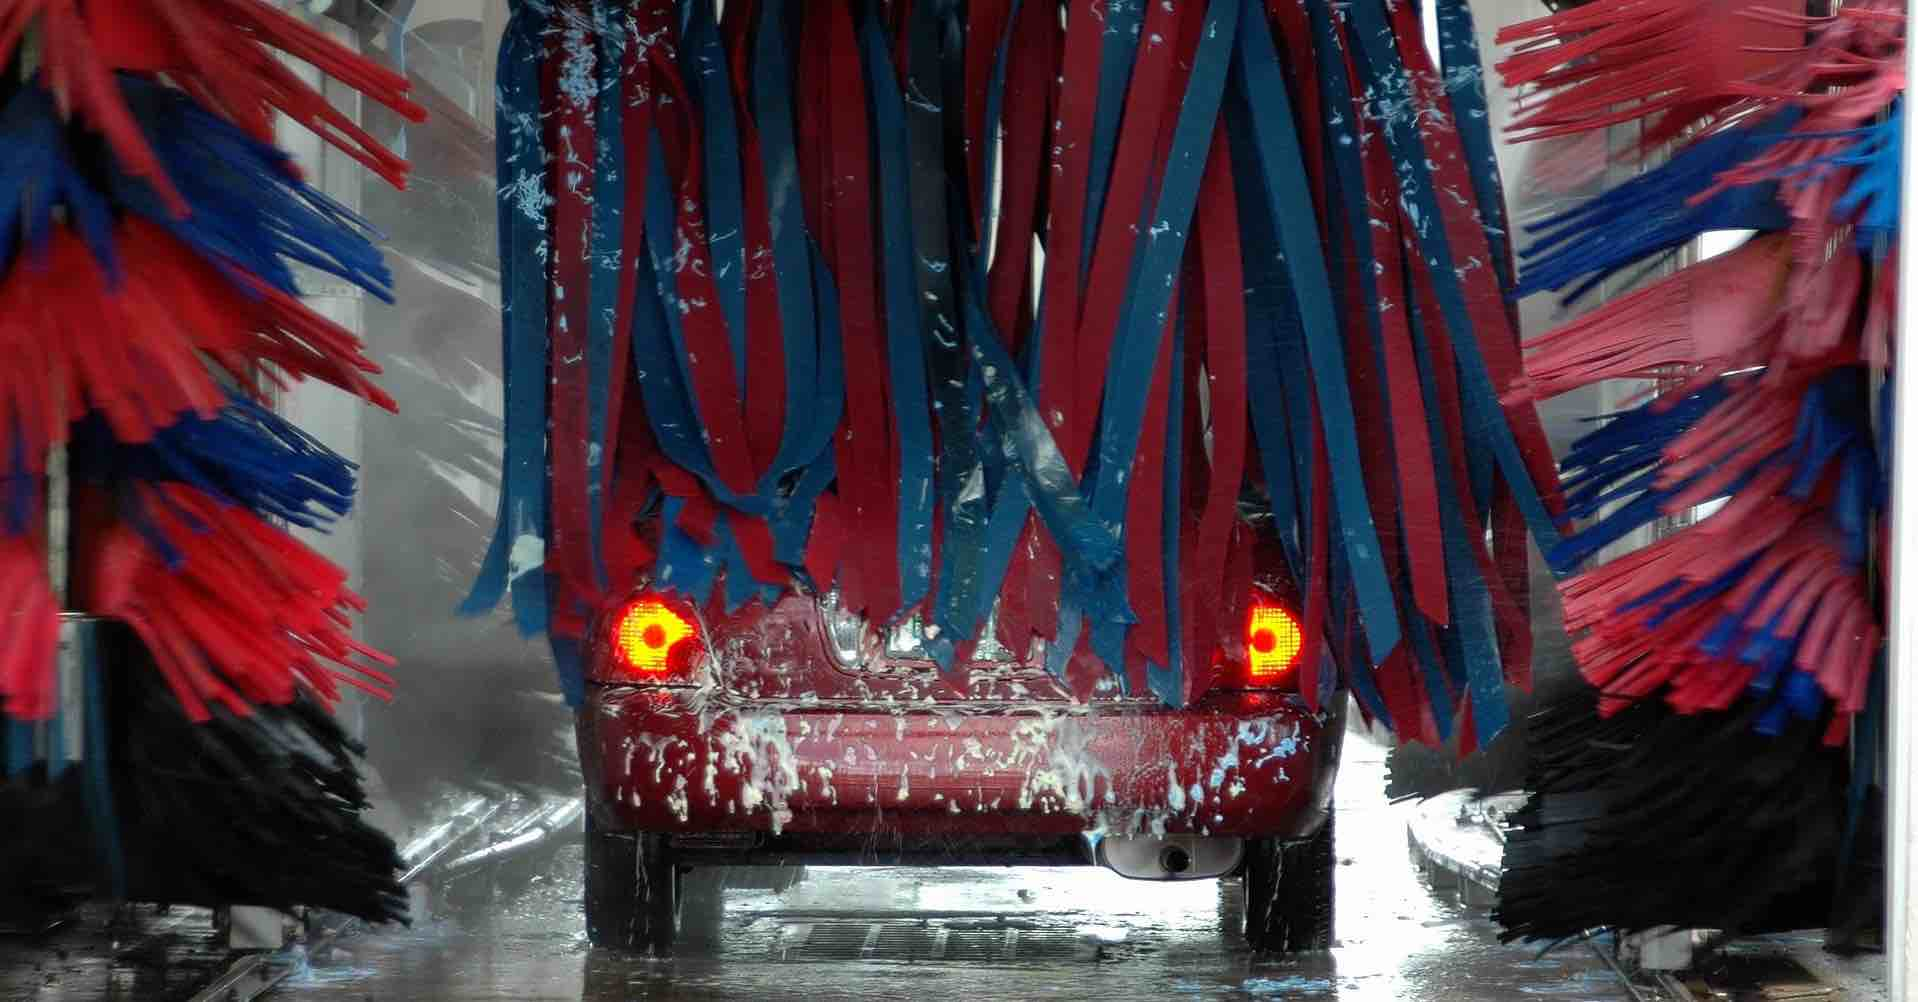 A car getting hand washed. Ever wondered how often you should be washing your car? The answer depends on where you live and your driving conditions, but routine car washes are more than just a great way to keep your car clean.